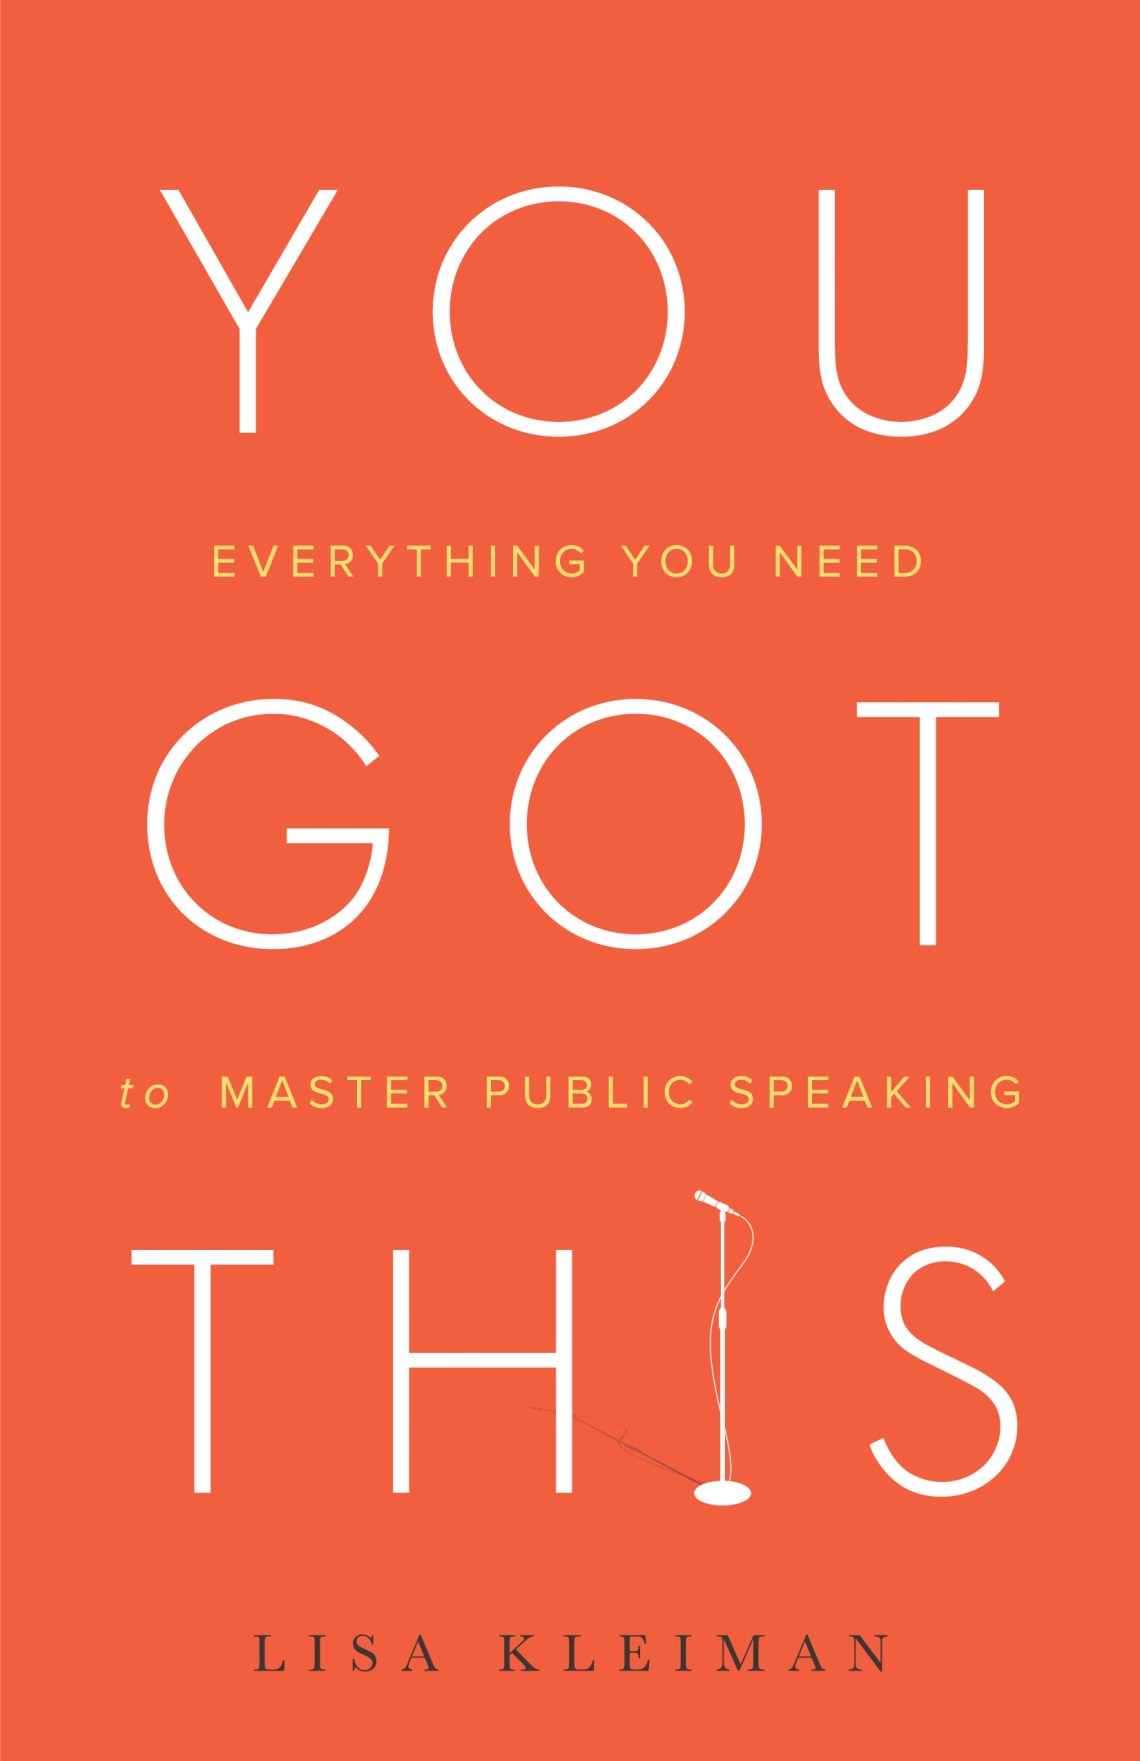 You got this one of best public speaking books